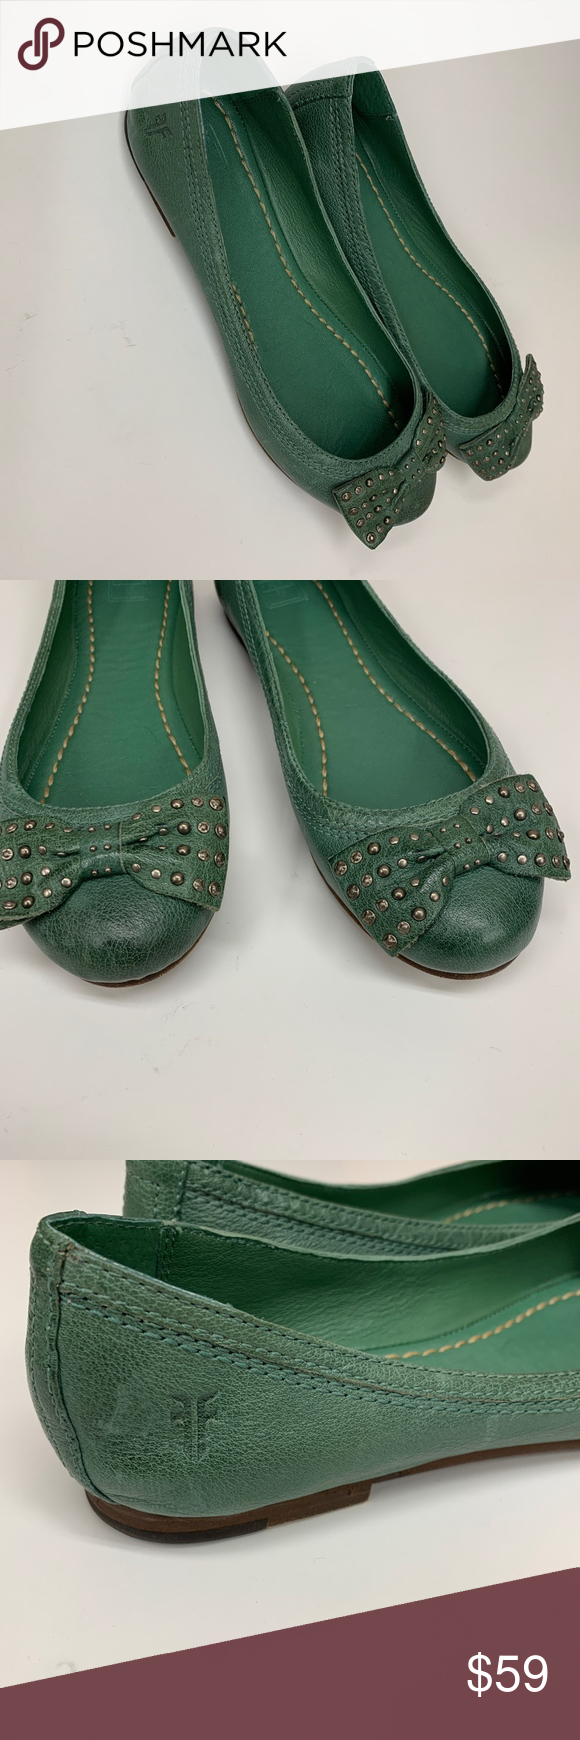 6f2b3427268 FRYE Carson Bow Green Ballet Flats 8 M FRYE Carson Bow Green Ballet Flats 8  M Same or next day shipping! Accepting reasonable offers. No trades